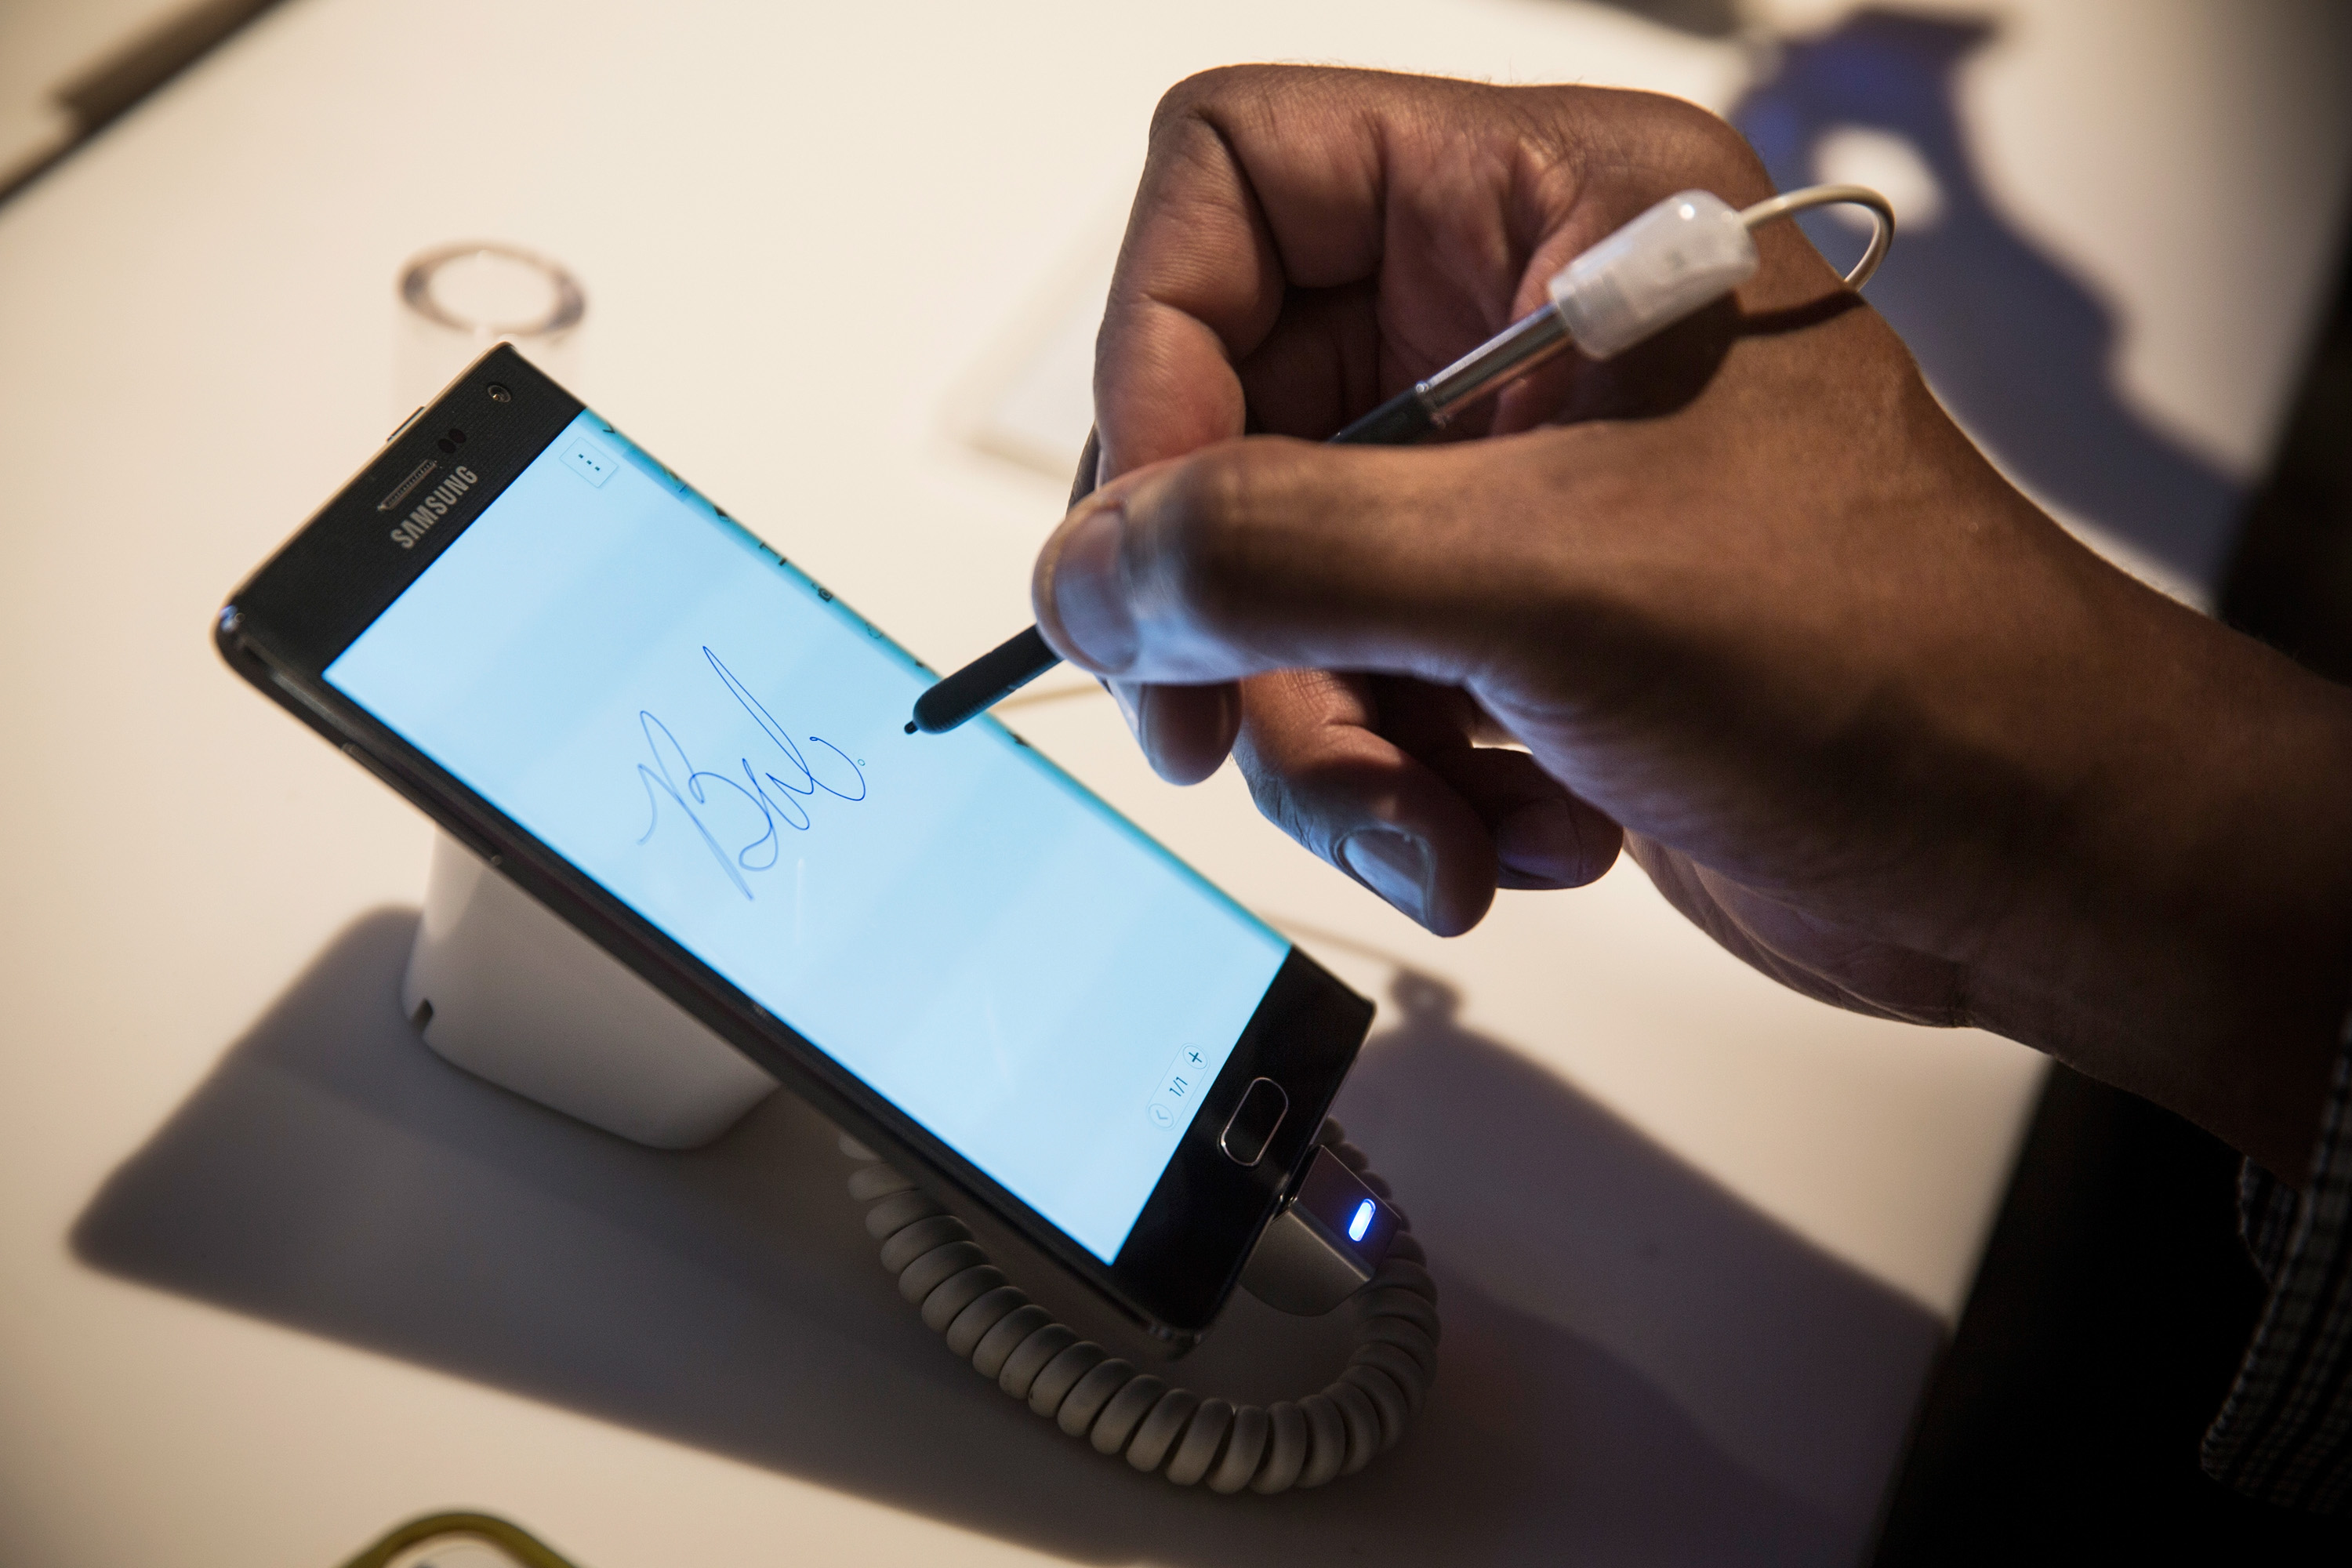 A man tries out the Samsung Galaxy Note Edge at a media launch event on September 3, 2014 in New York City. The Note Edge features a rounded 5.6-inch screen.  (Photo by Andrew Burton/Getty Images)